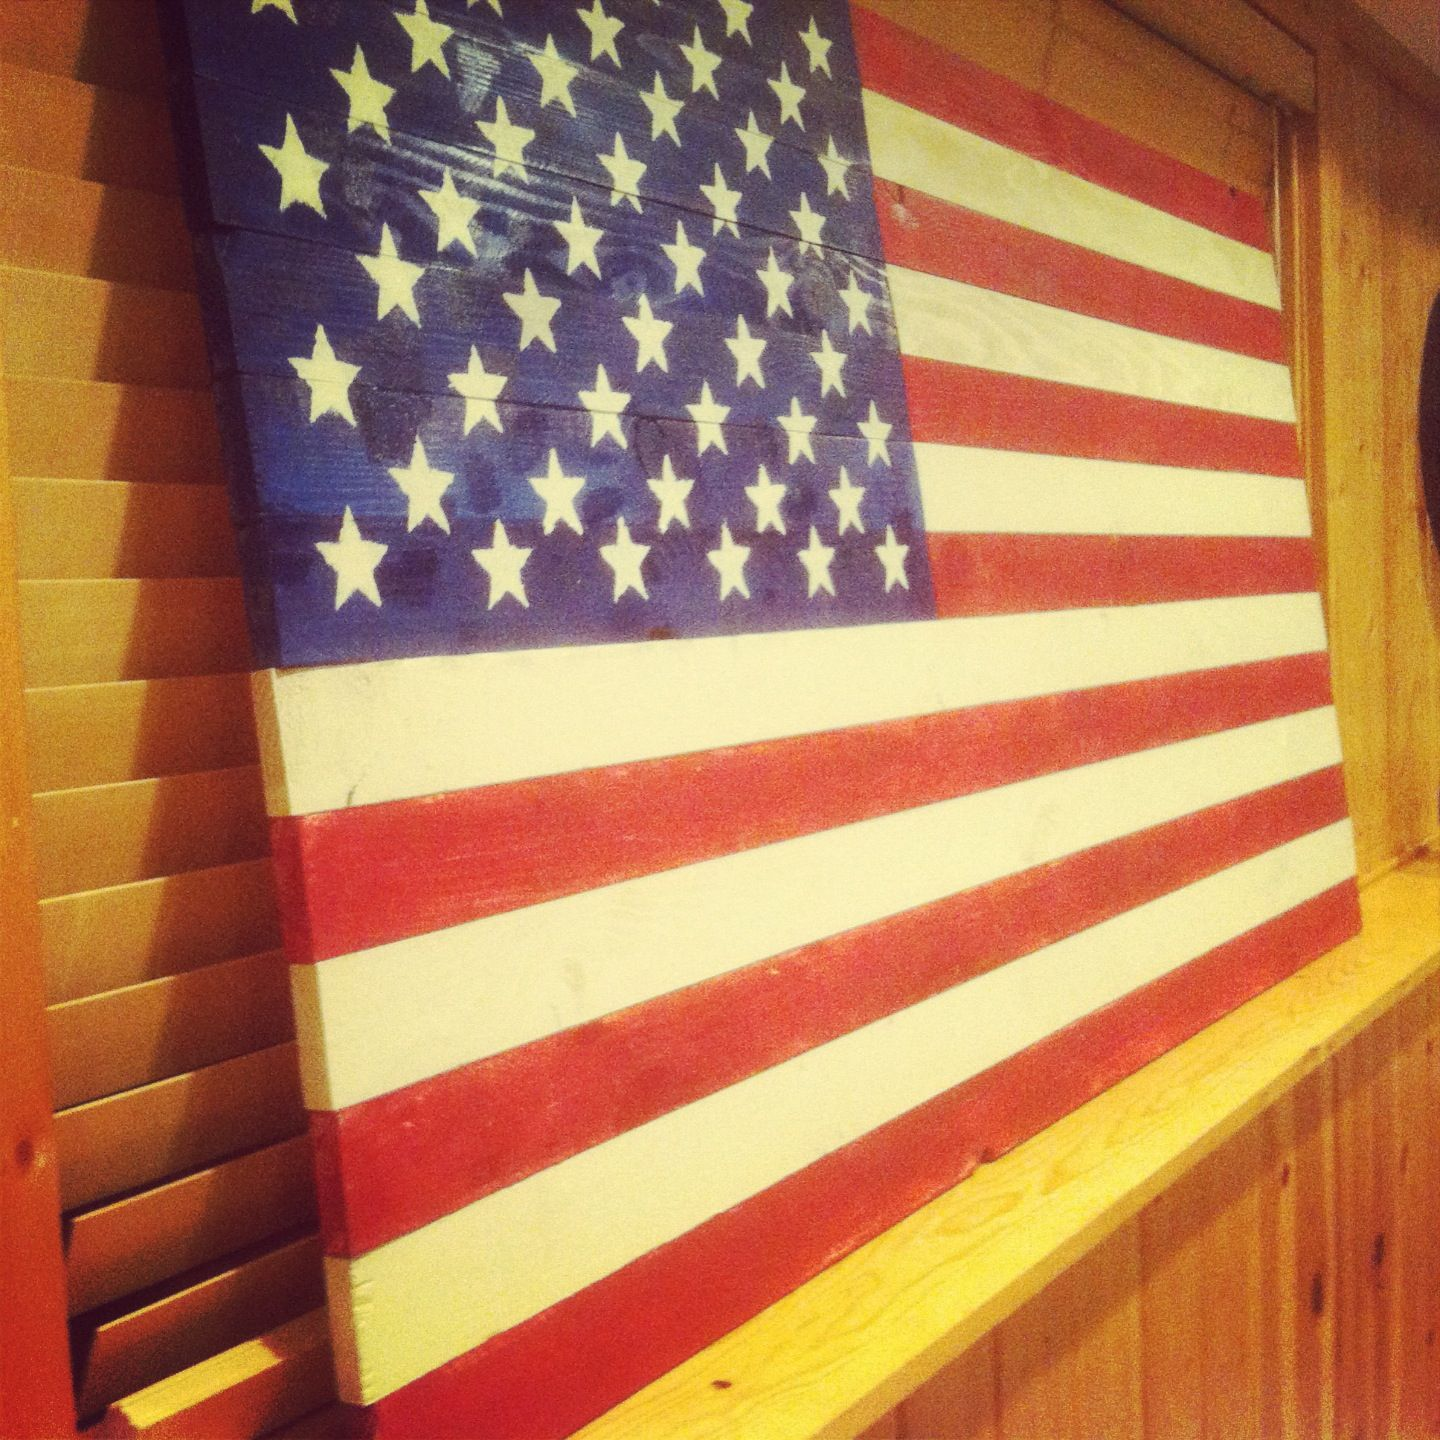 Rustic American Flag. 13 1x3 boards, a couple hours of research ...